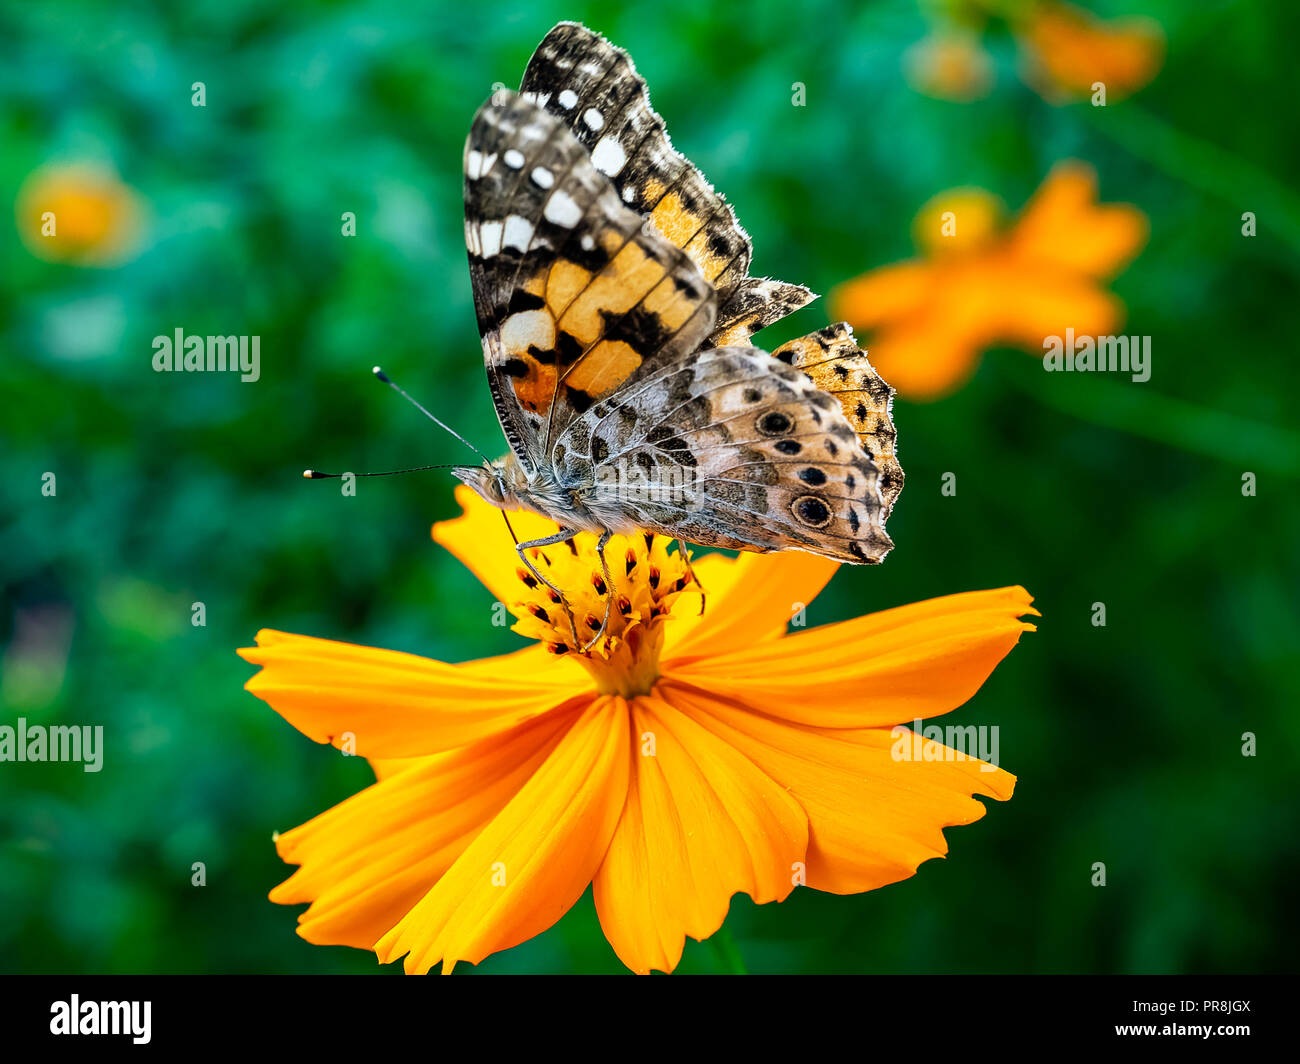 A painted lady butterfly rests on an orange cosmos flower along a field in central Kanagawa Prefecture, Japan. Stock Photo